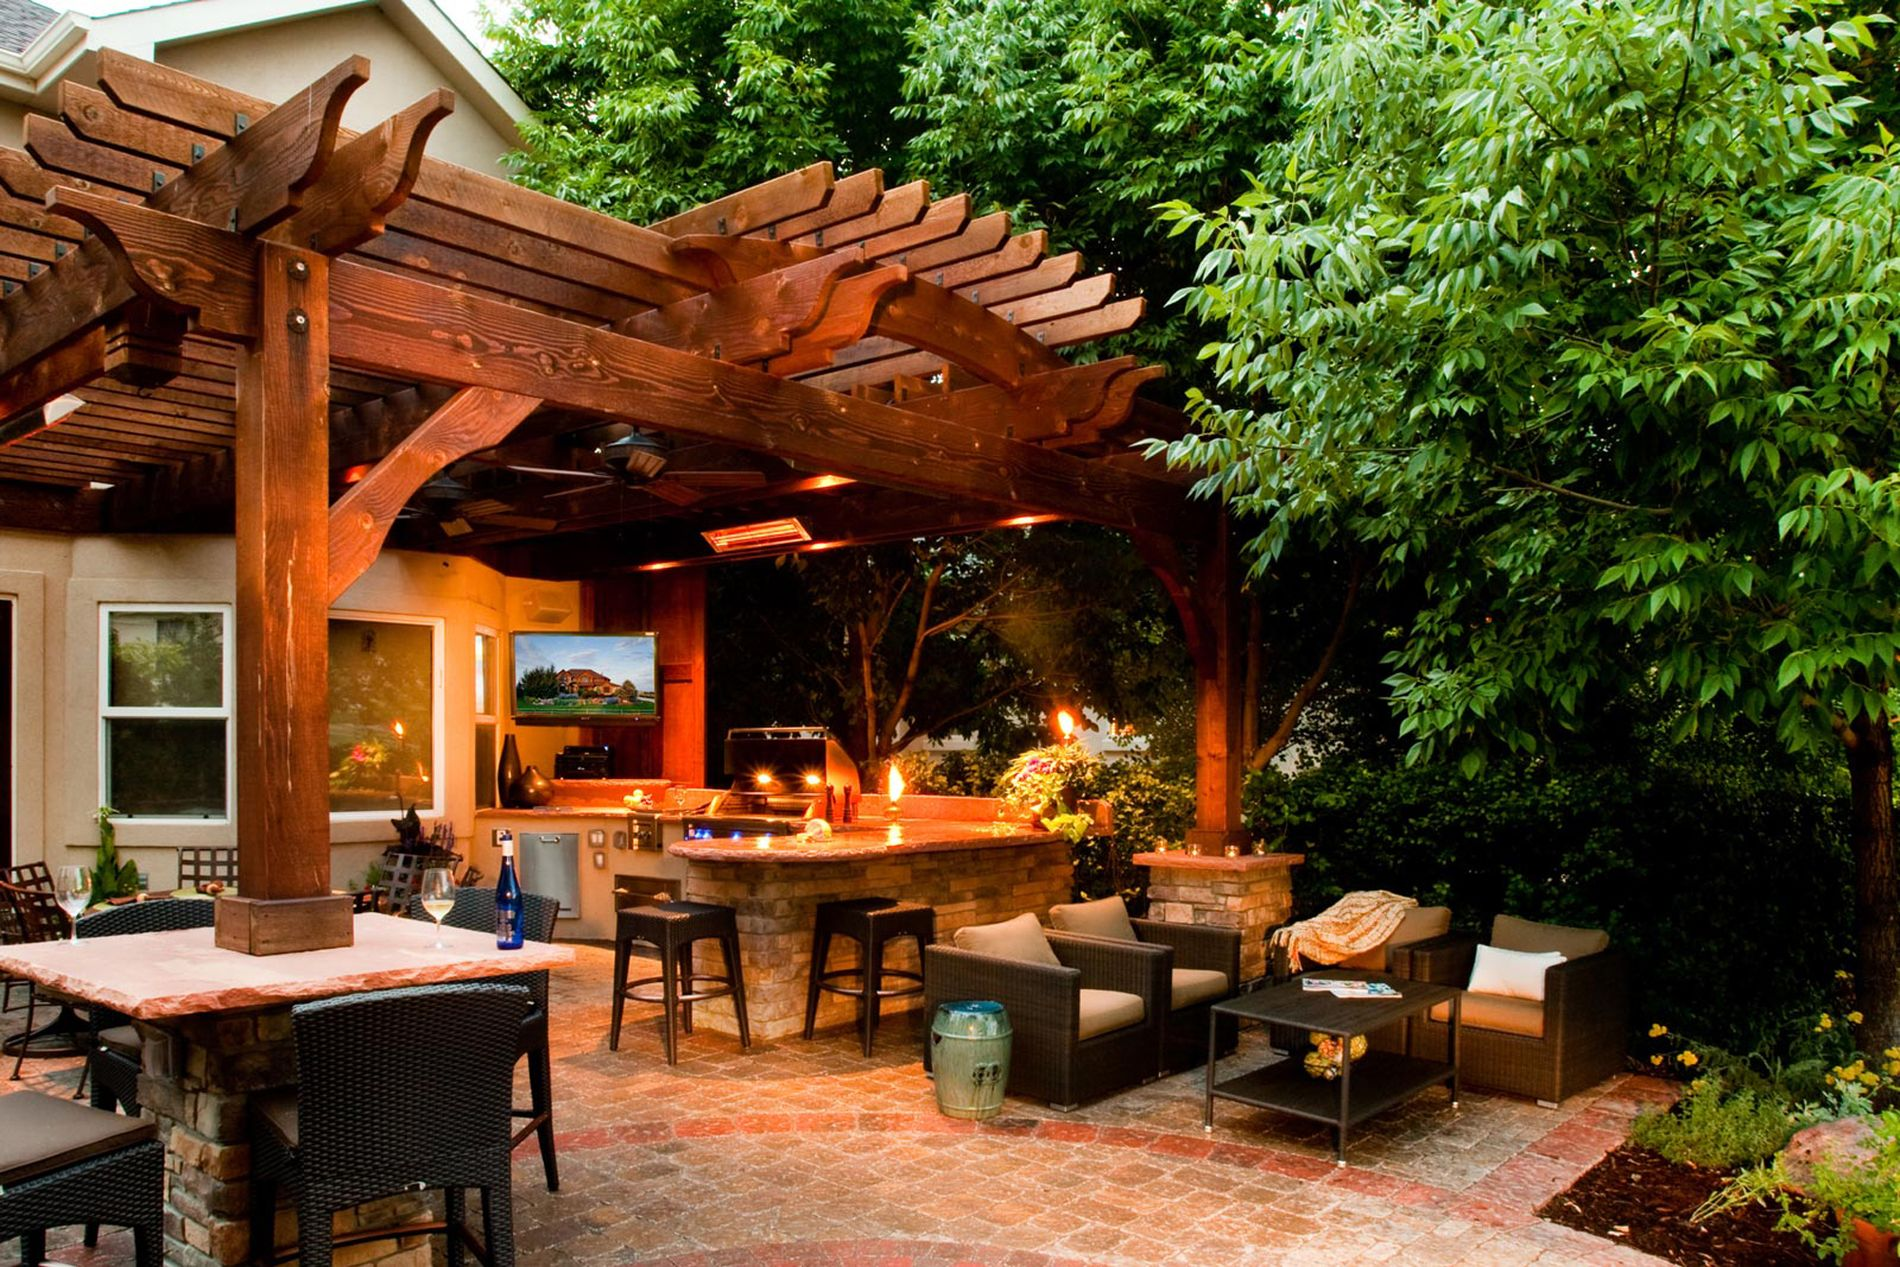 Outdoor Kitchen With Paver Patio and Shade Structure at Night